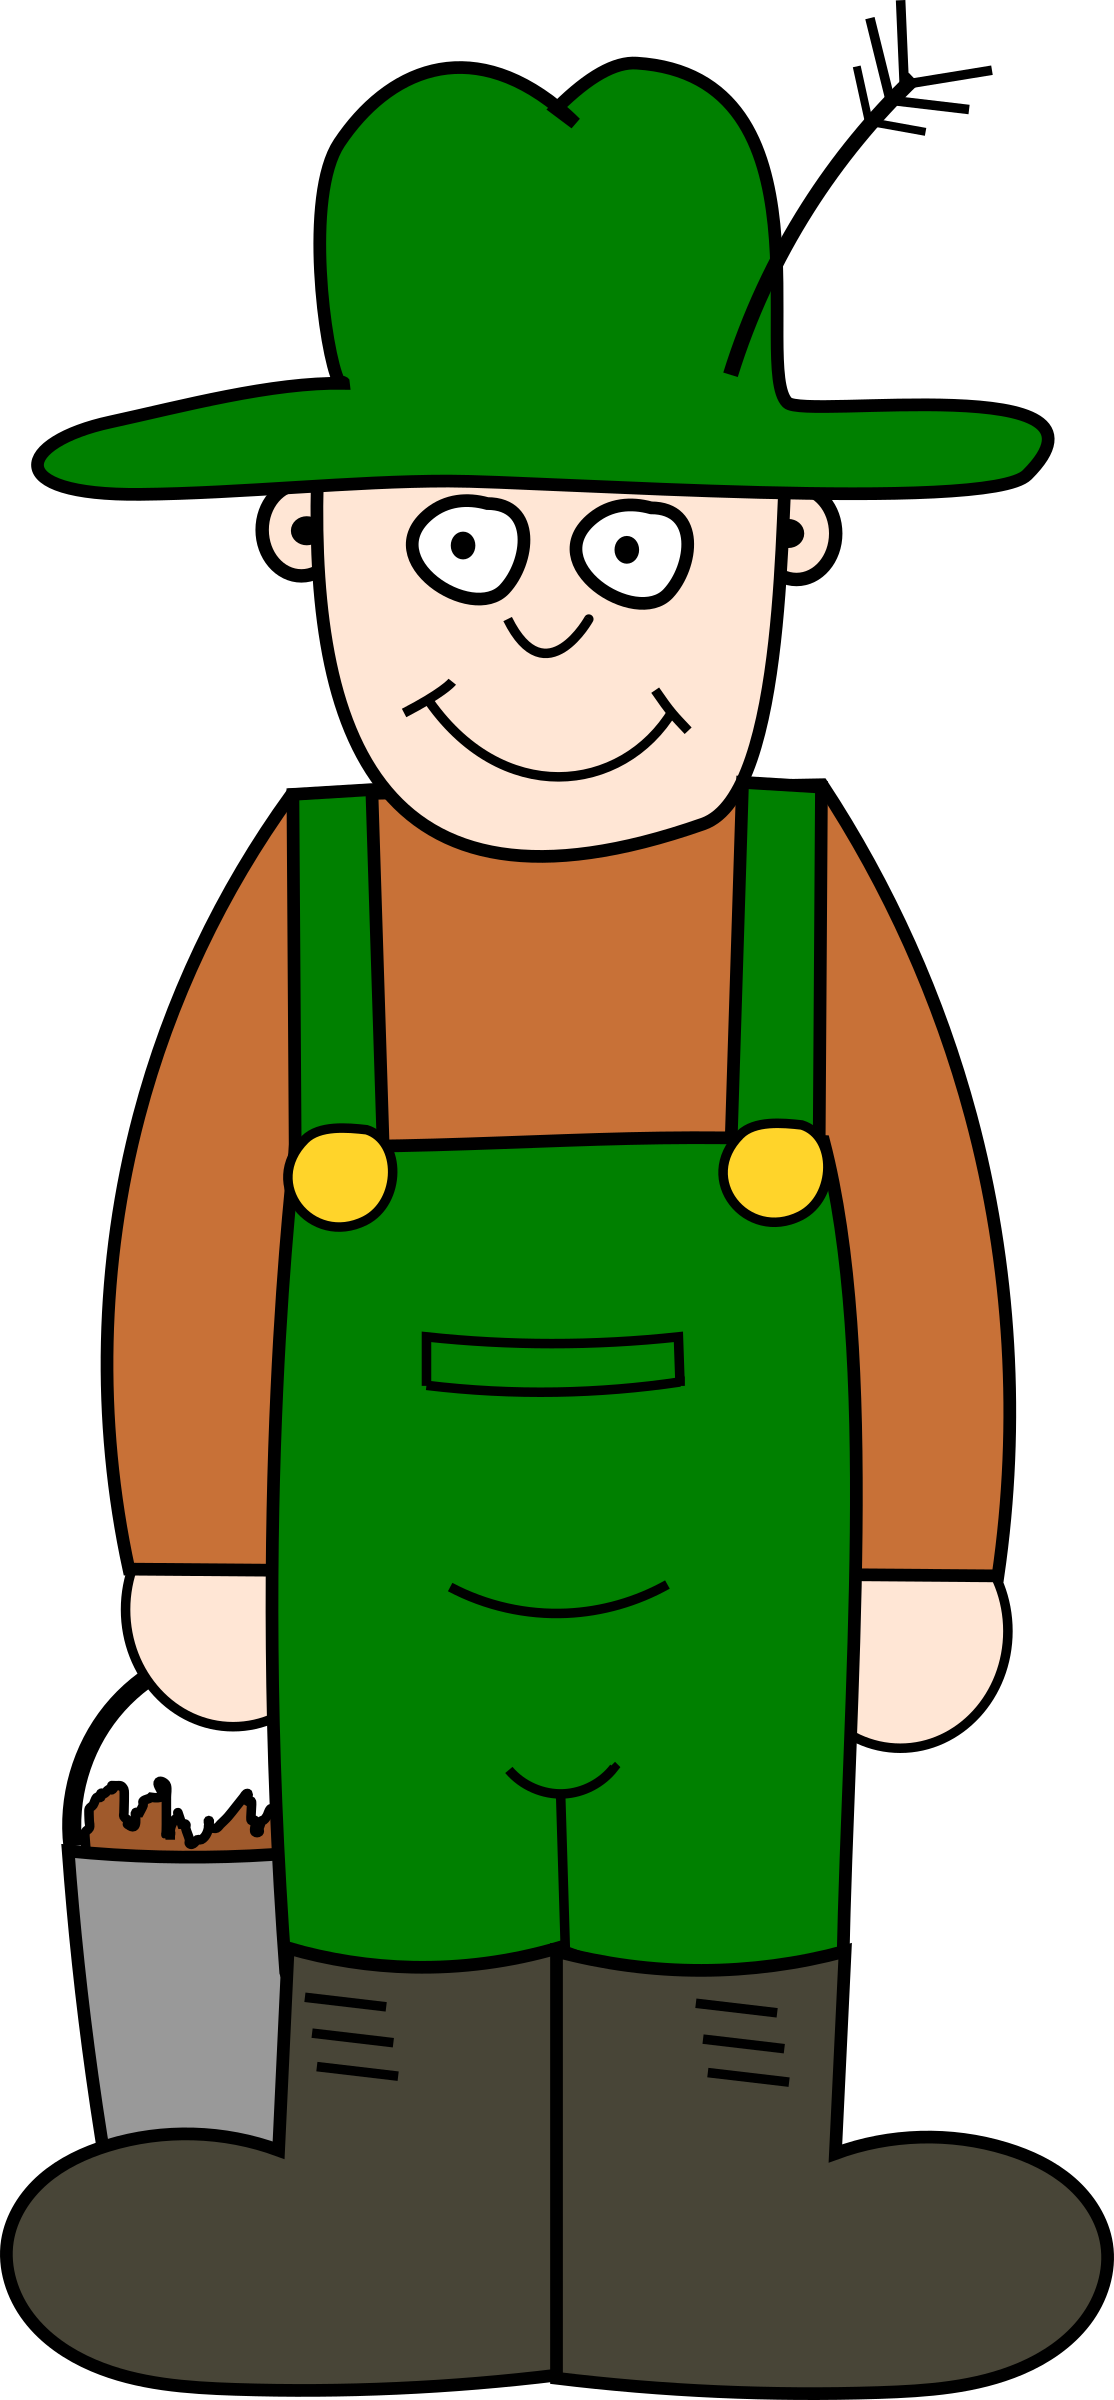 Picture clipart farmer. Cartoon big image png